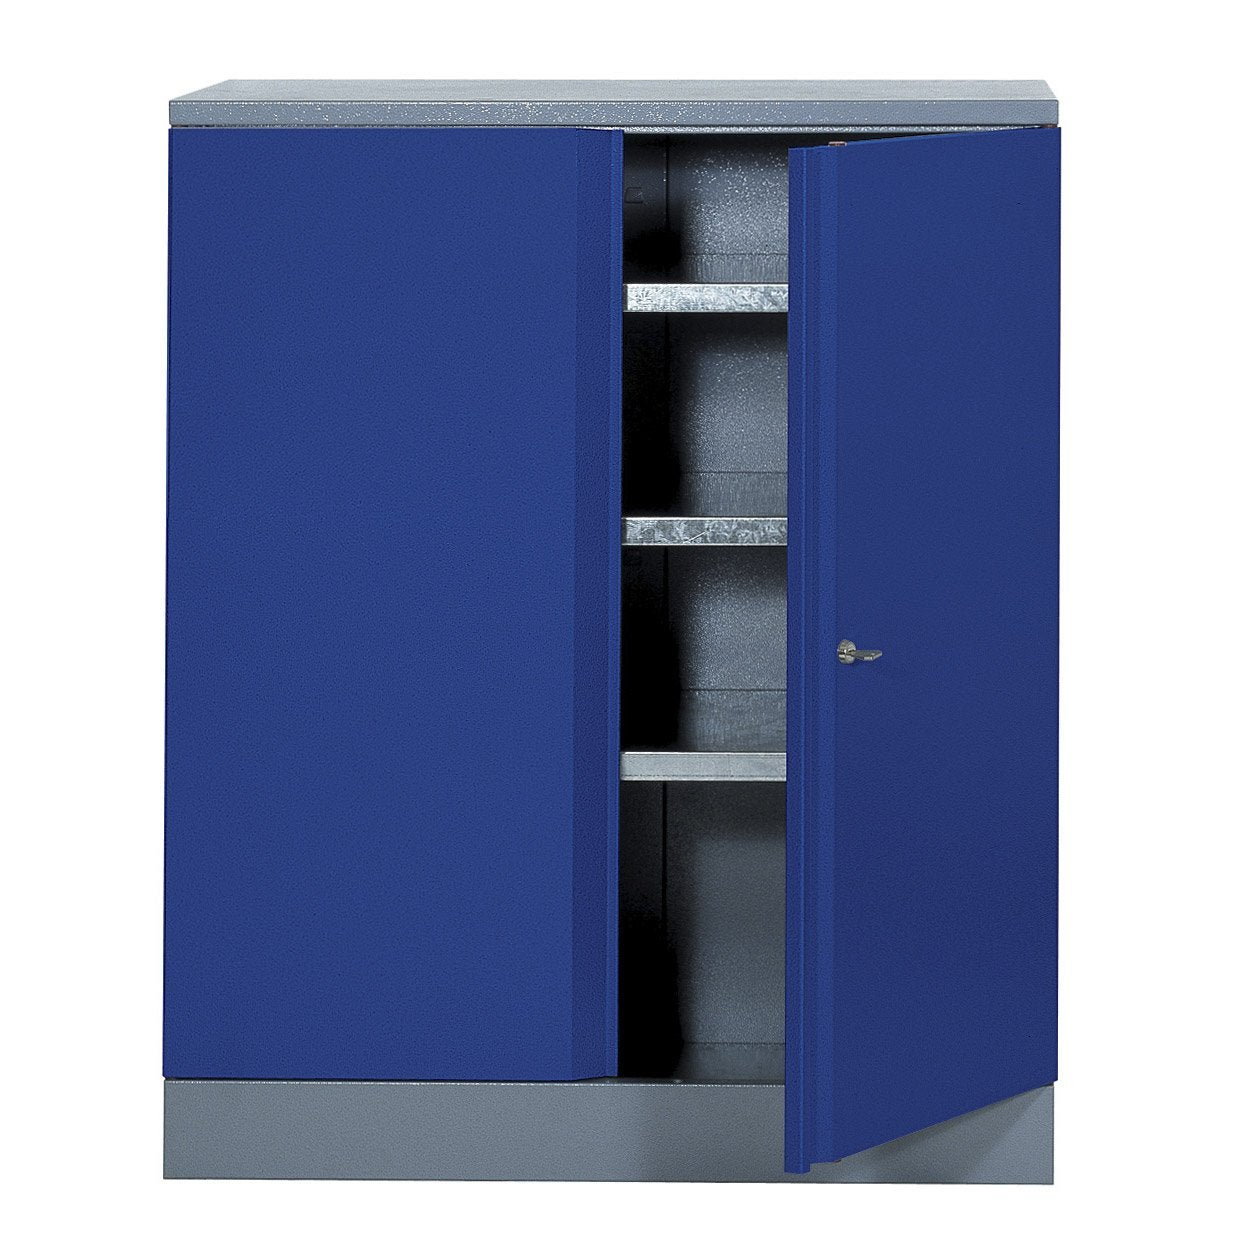 armoire de rangement en m tal bleu kupper 91 cm 1 porte leroy merlin. Black Bedroom Furniture Sets. Home Design Ideas